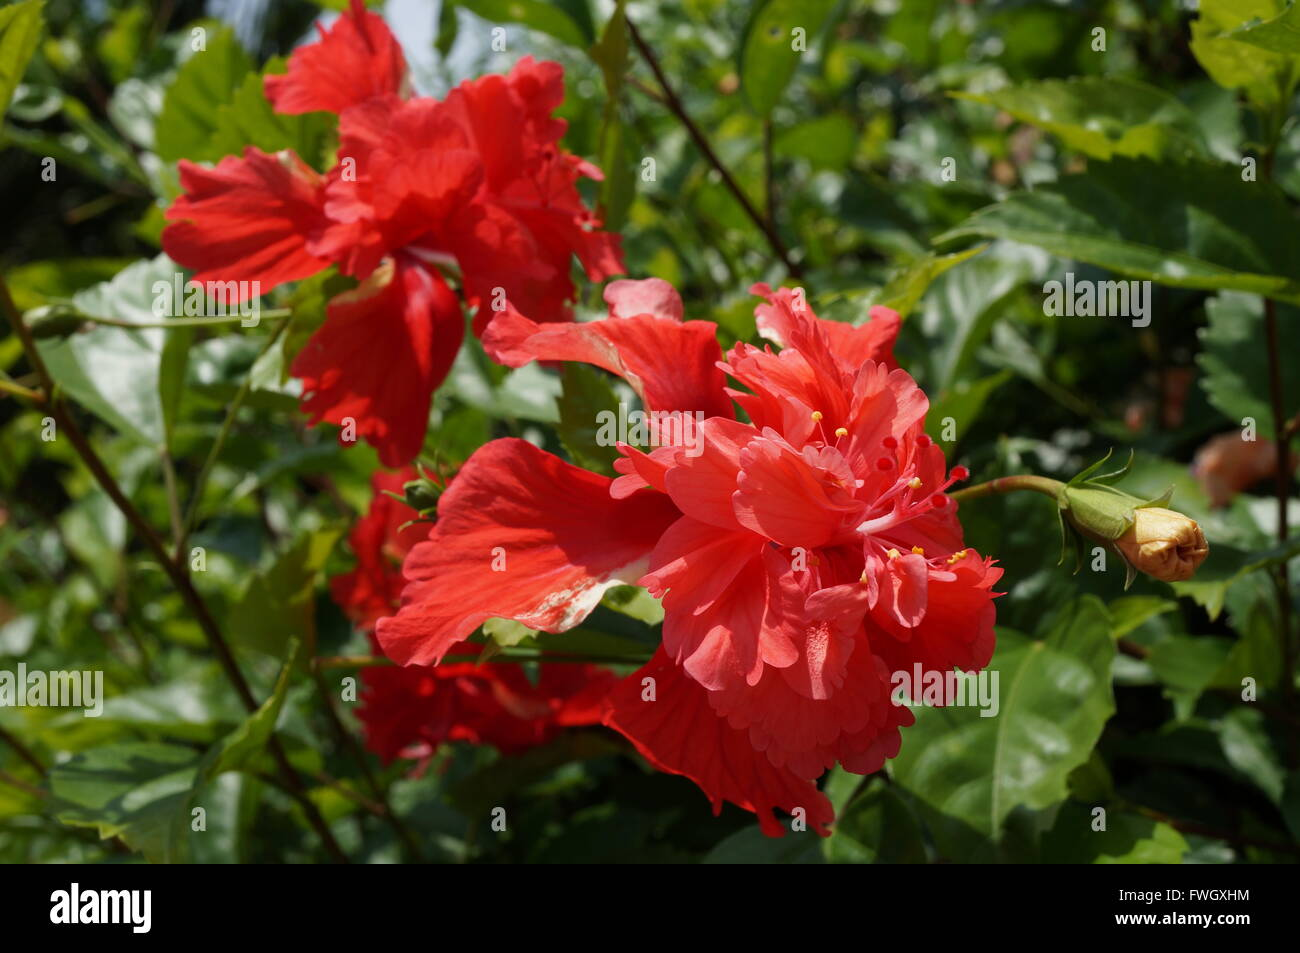 Double bloom red hibiscus flower stock photo royalty free image double bloom red hibiscus flower izmirmasajfo Image collections